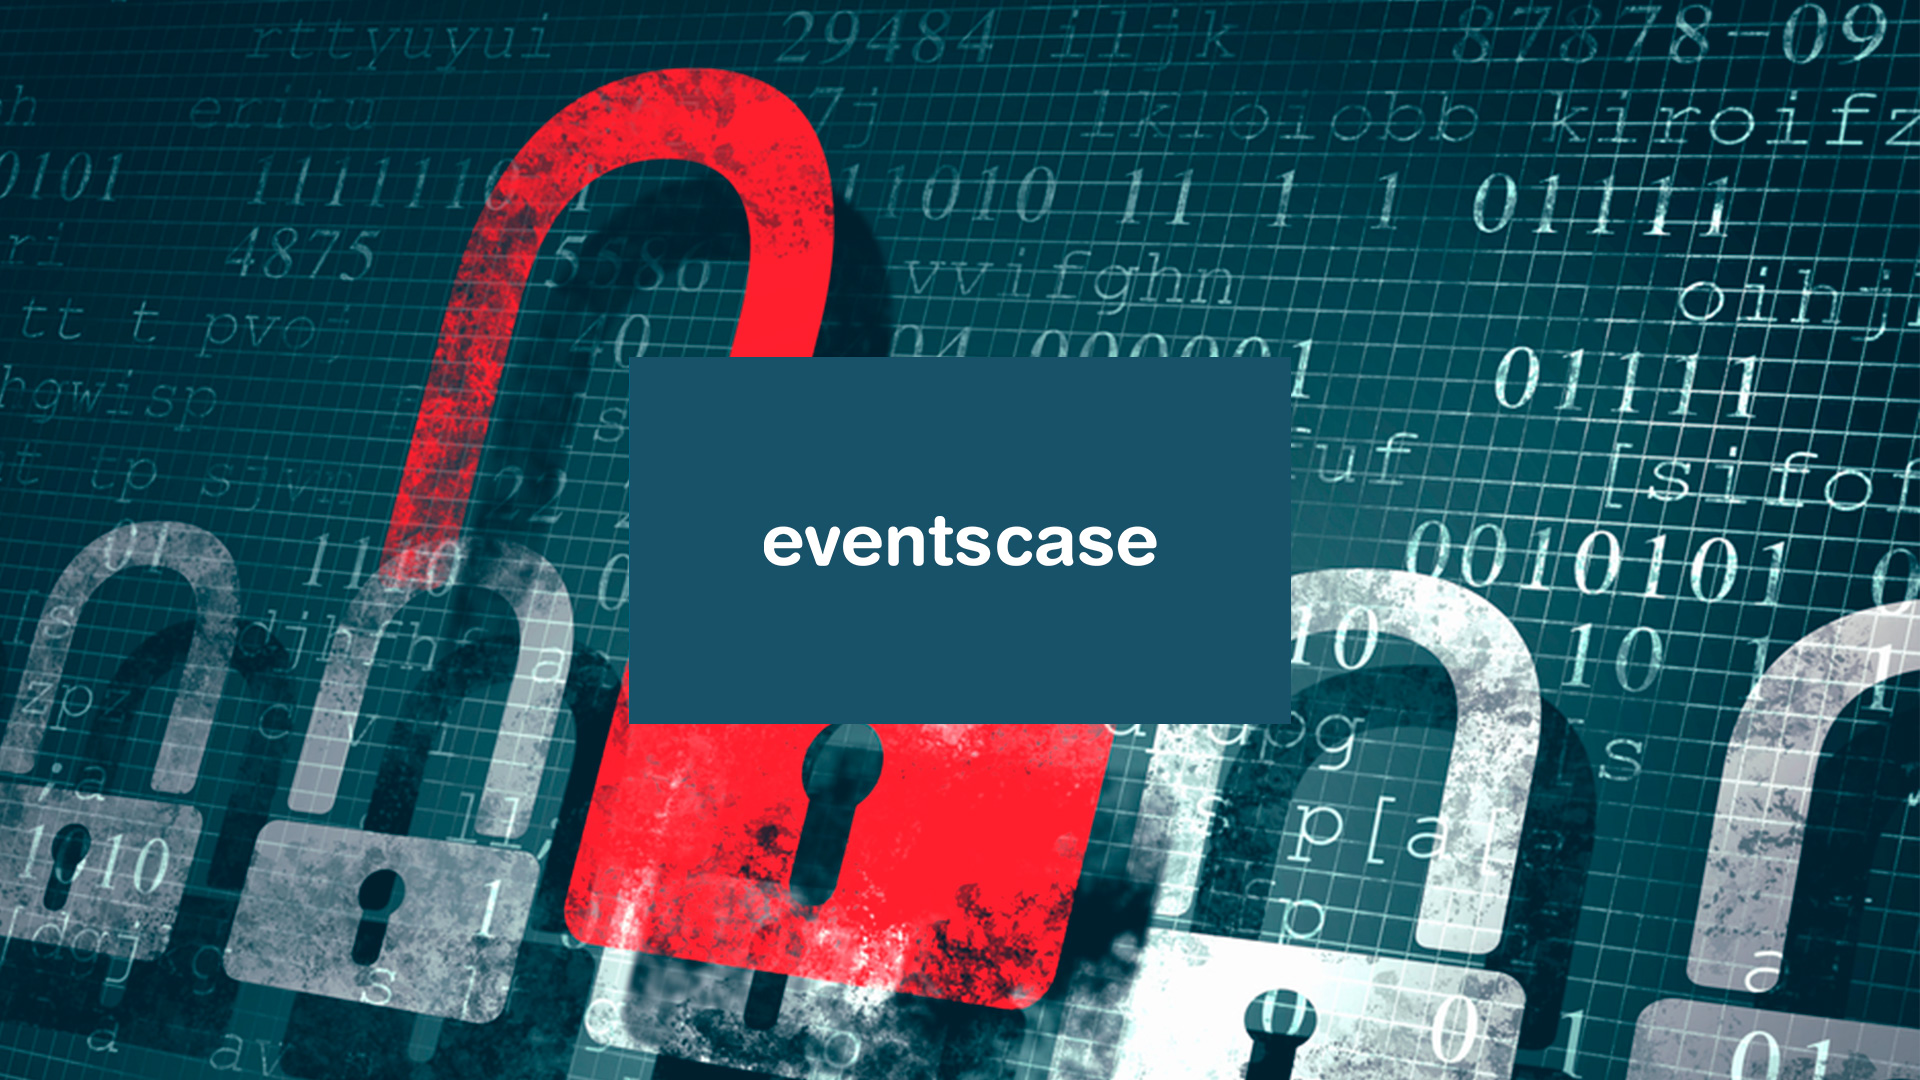 EU-US Privacy Shield Collapses – Is Your Event Data at Risk of Snooping?